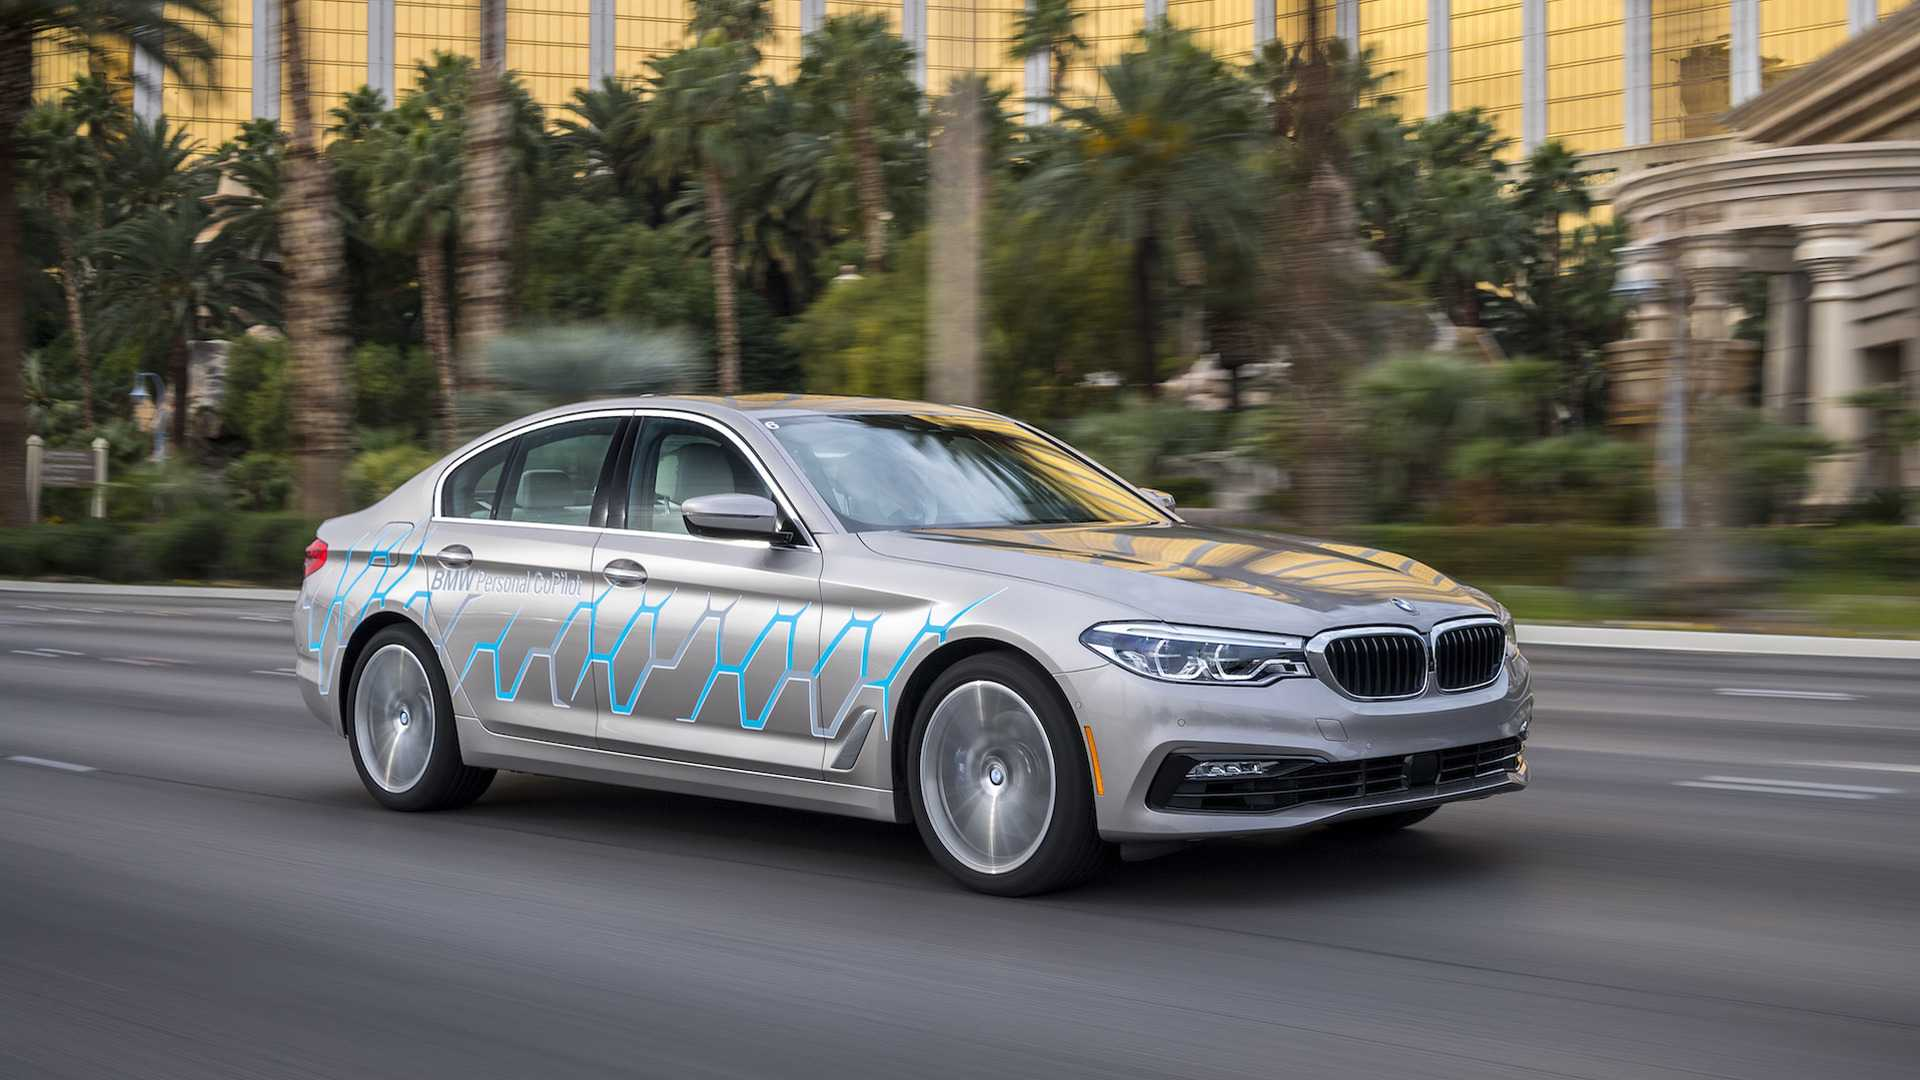 BMW 5 Series Cars with Autonomous Driving Capability Revealed at CES 2017